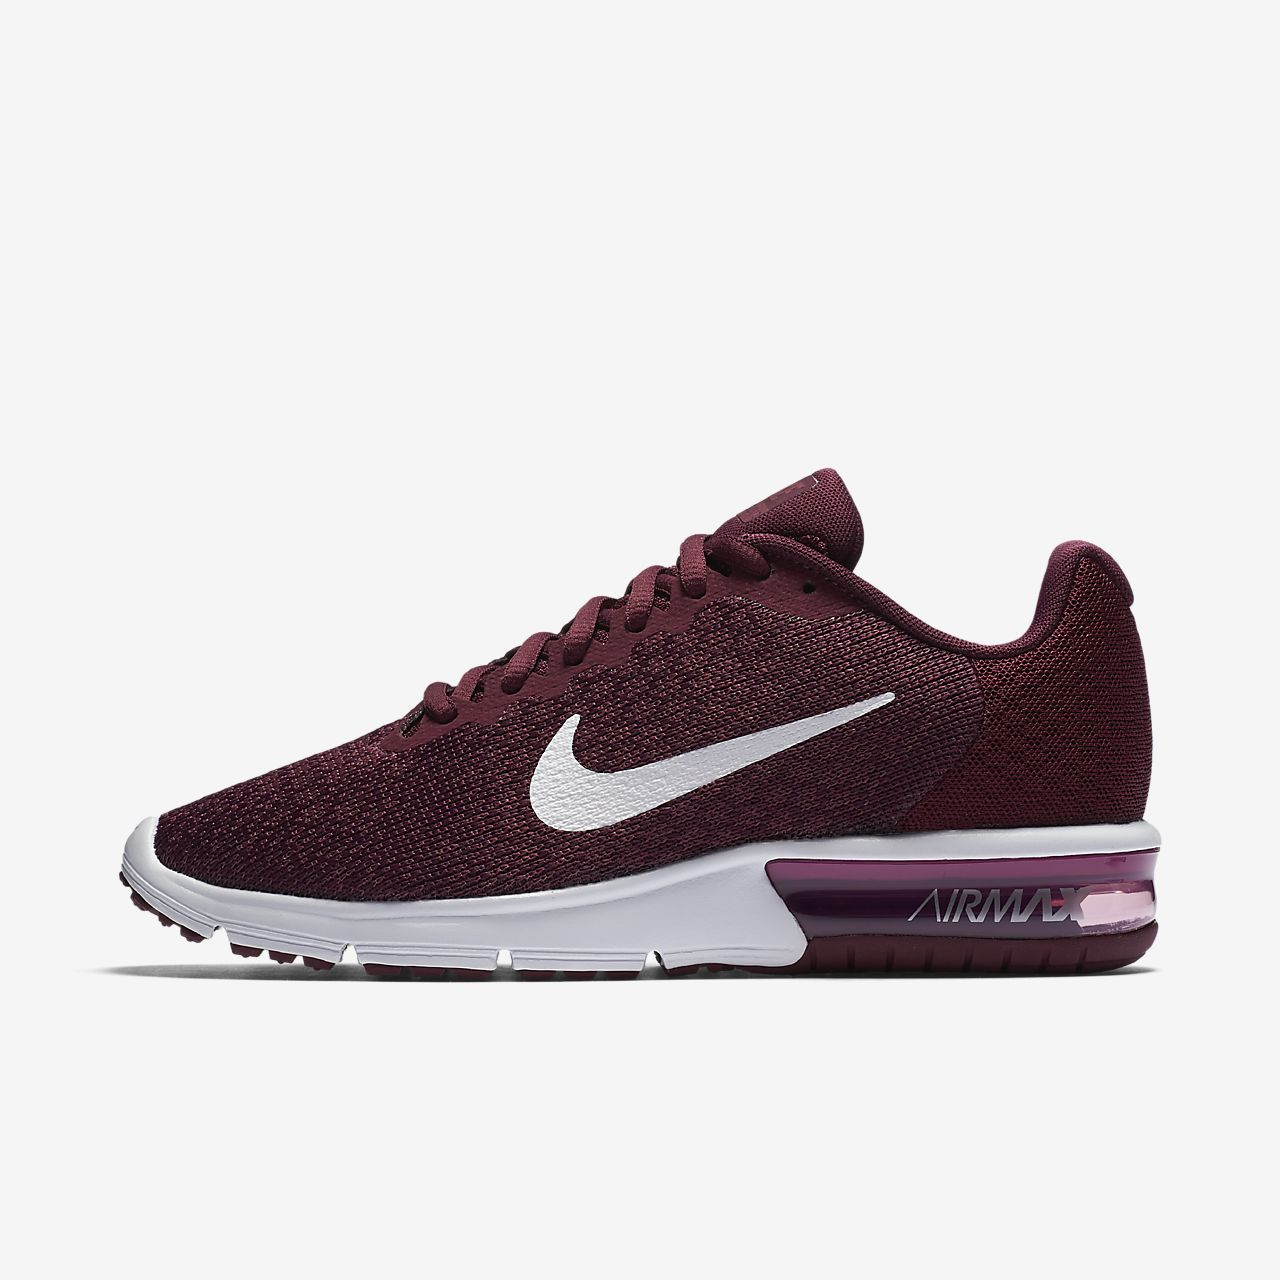 nike shoes release date, Nike AIR MAX SEQUENT za 239 9z